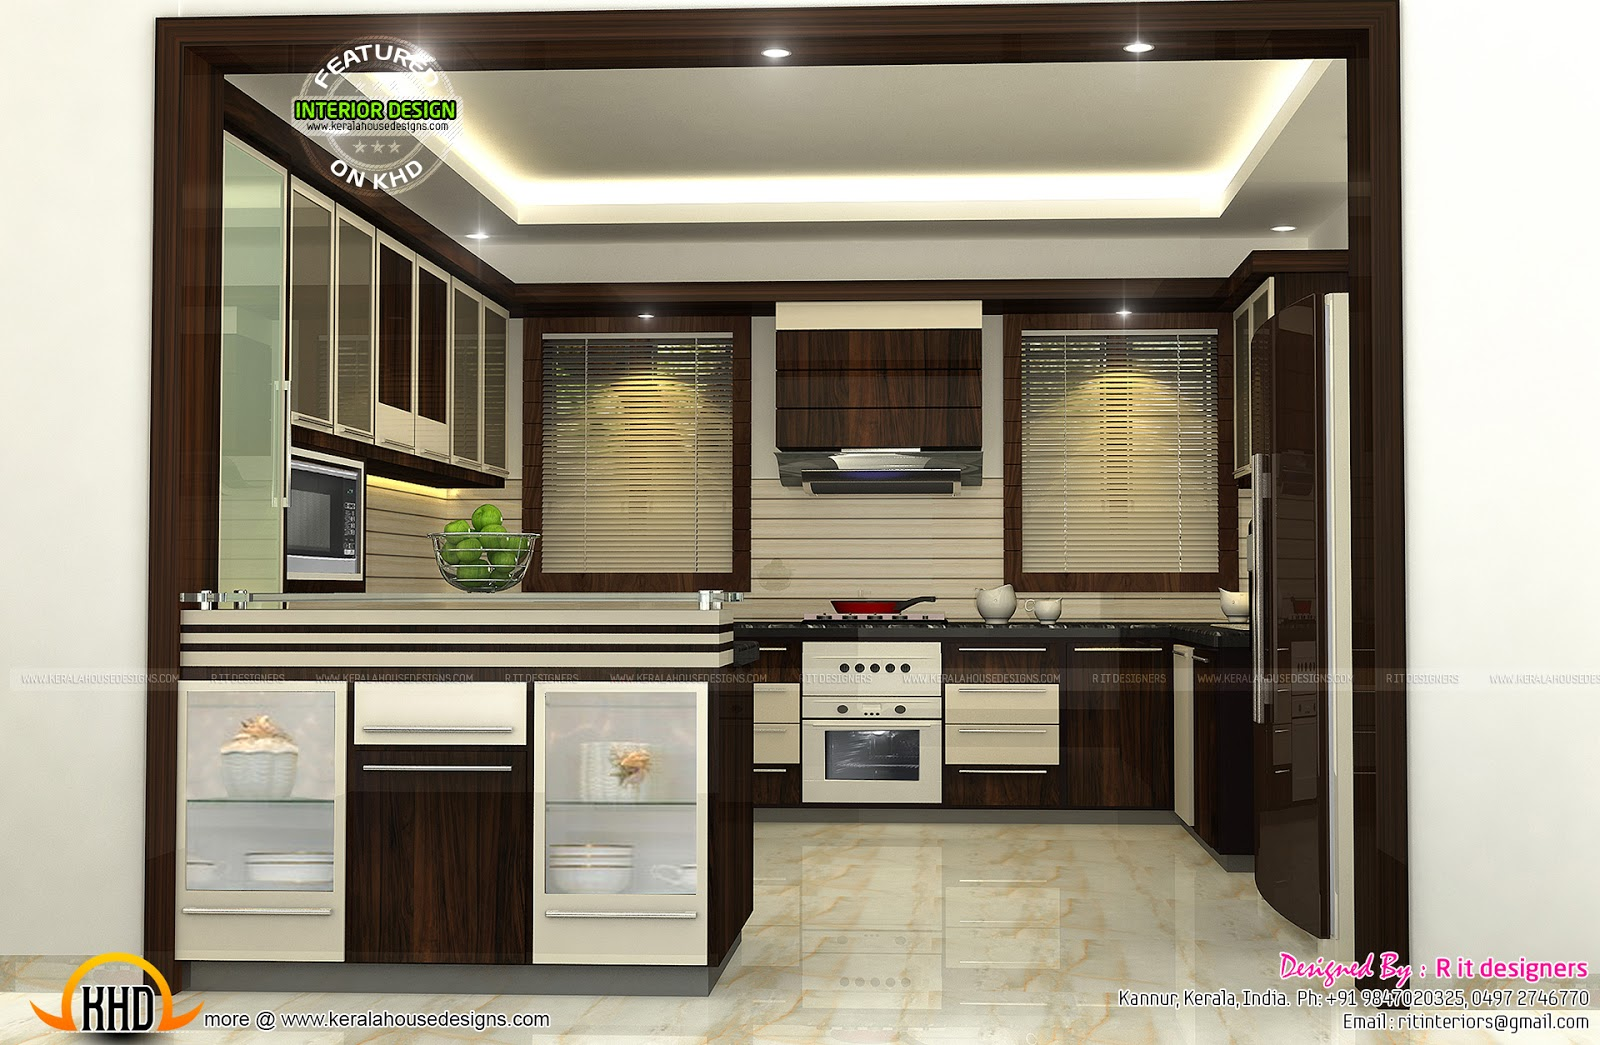 Brilliant Small Kitchen Design Kerala Interior Modular Designs